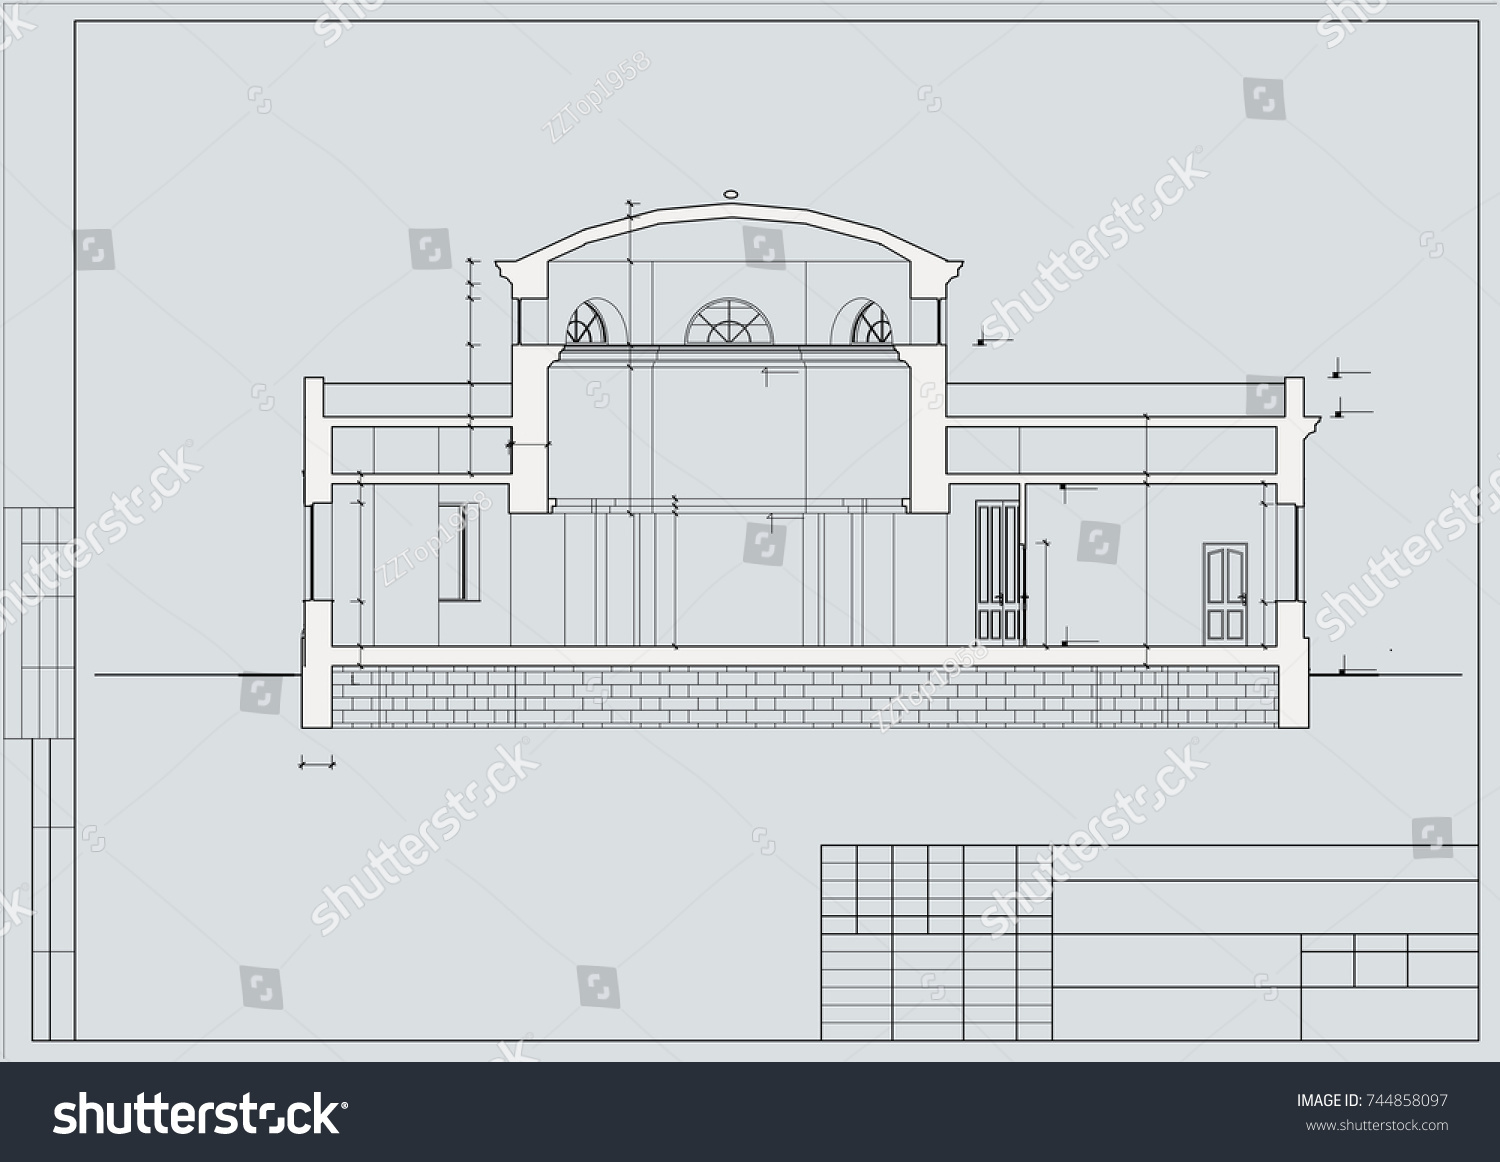 Project building old hospital facade section stock vector the project of the building of the old hospital facade section blueprint malvernweather Image collections